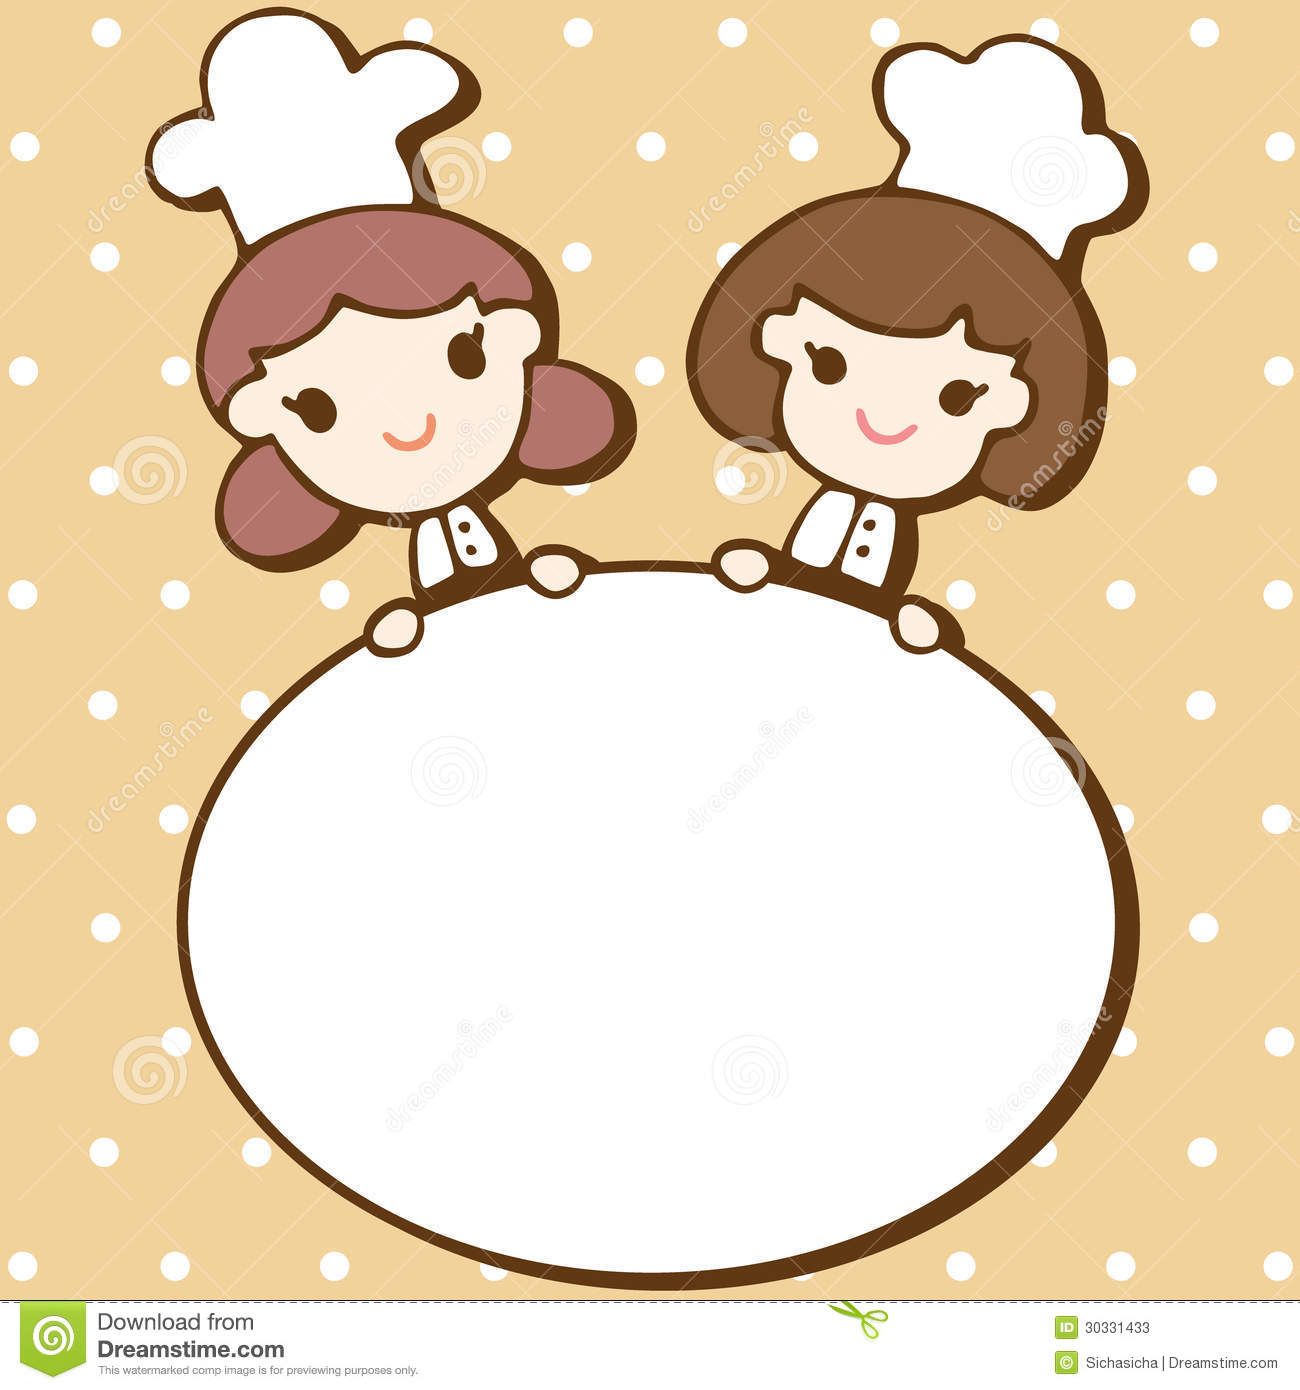 Cute chef woman clipart svg royalty free library Cute chef woman clipart - ClipartFest svg royalty free library